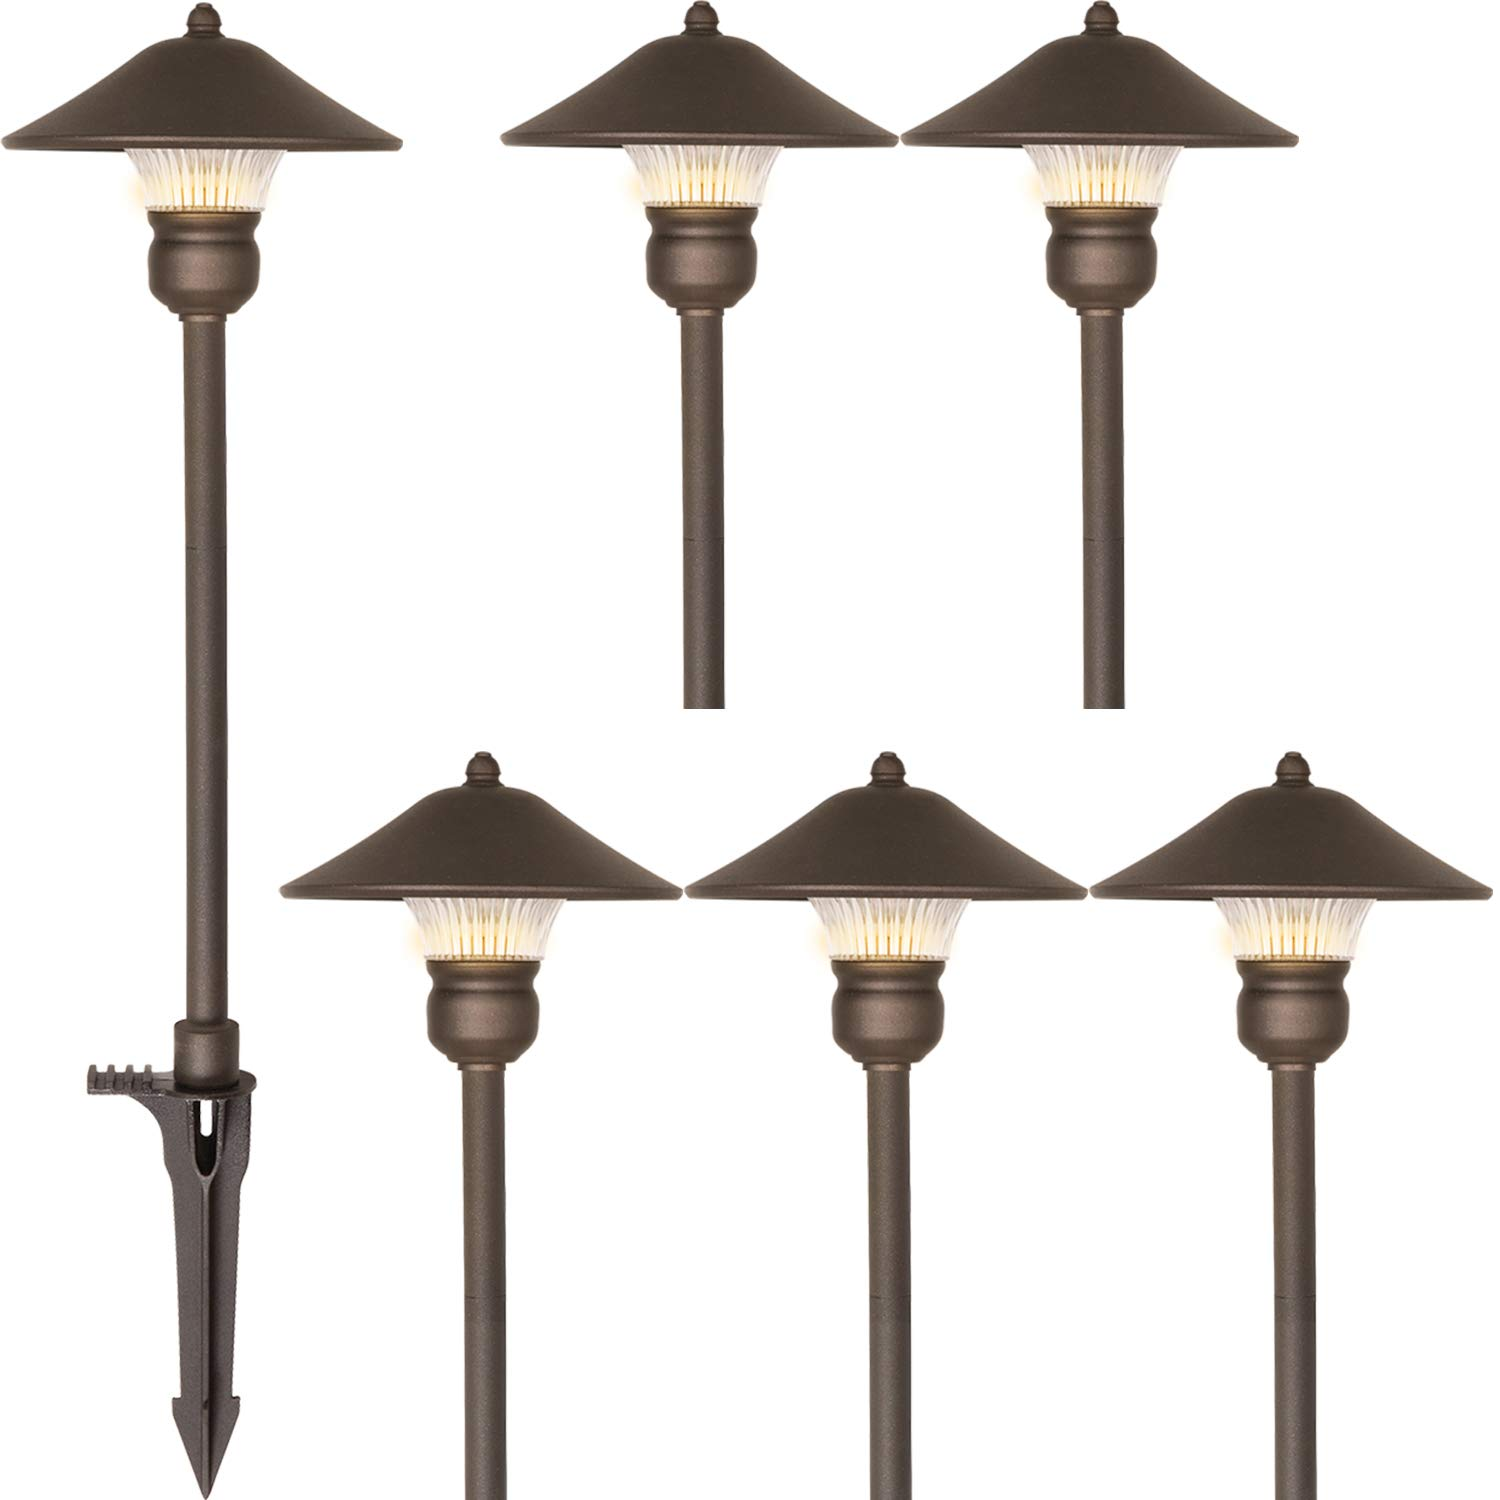 Hykolity 6 Pack Low Voltage LED Landscape Pathway Light, 3W 150LM 12V Wired for Outdoor Yard Lawn, Die-cast Aluminum Construction, 30-Watt Equivalent 15-Year Lifespan by hykolity